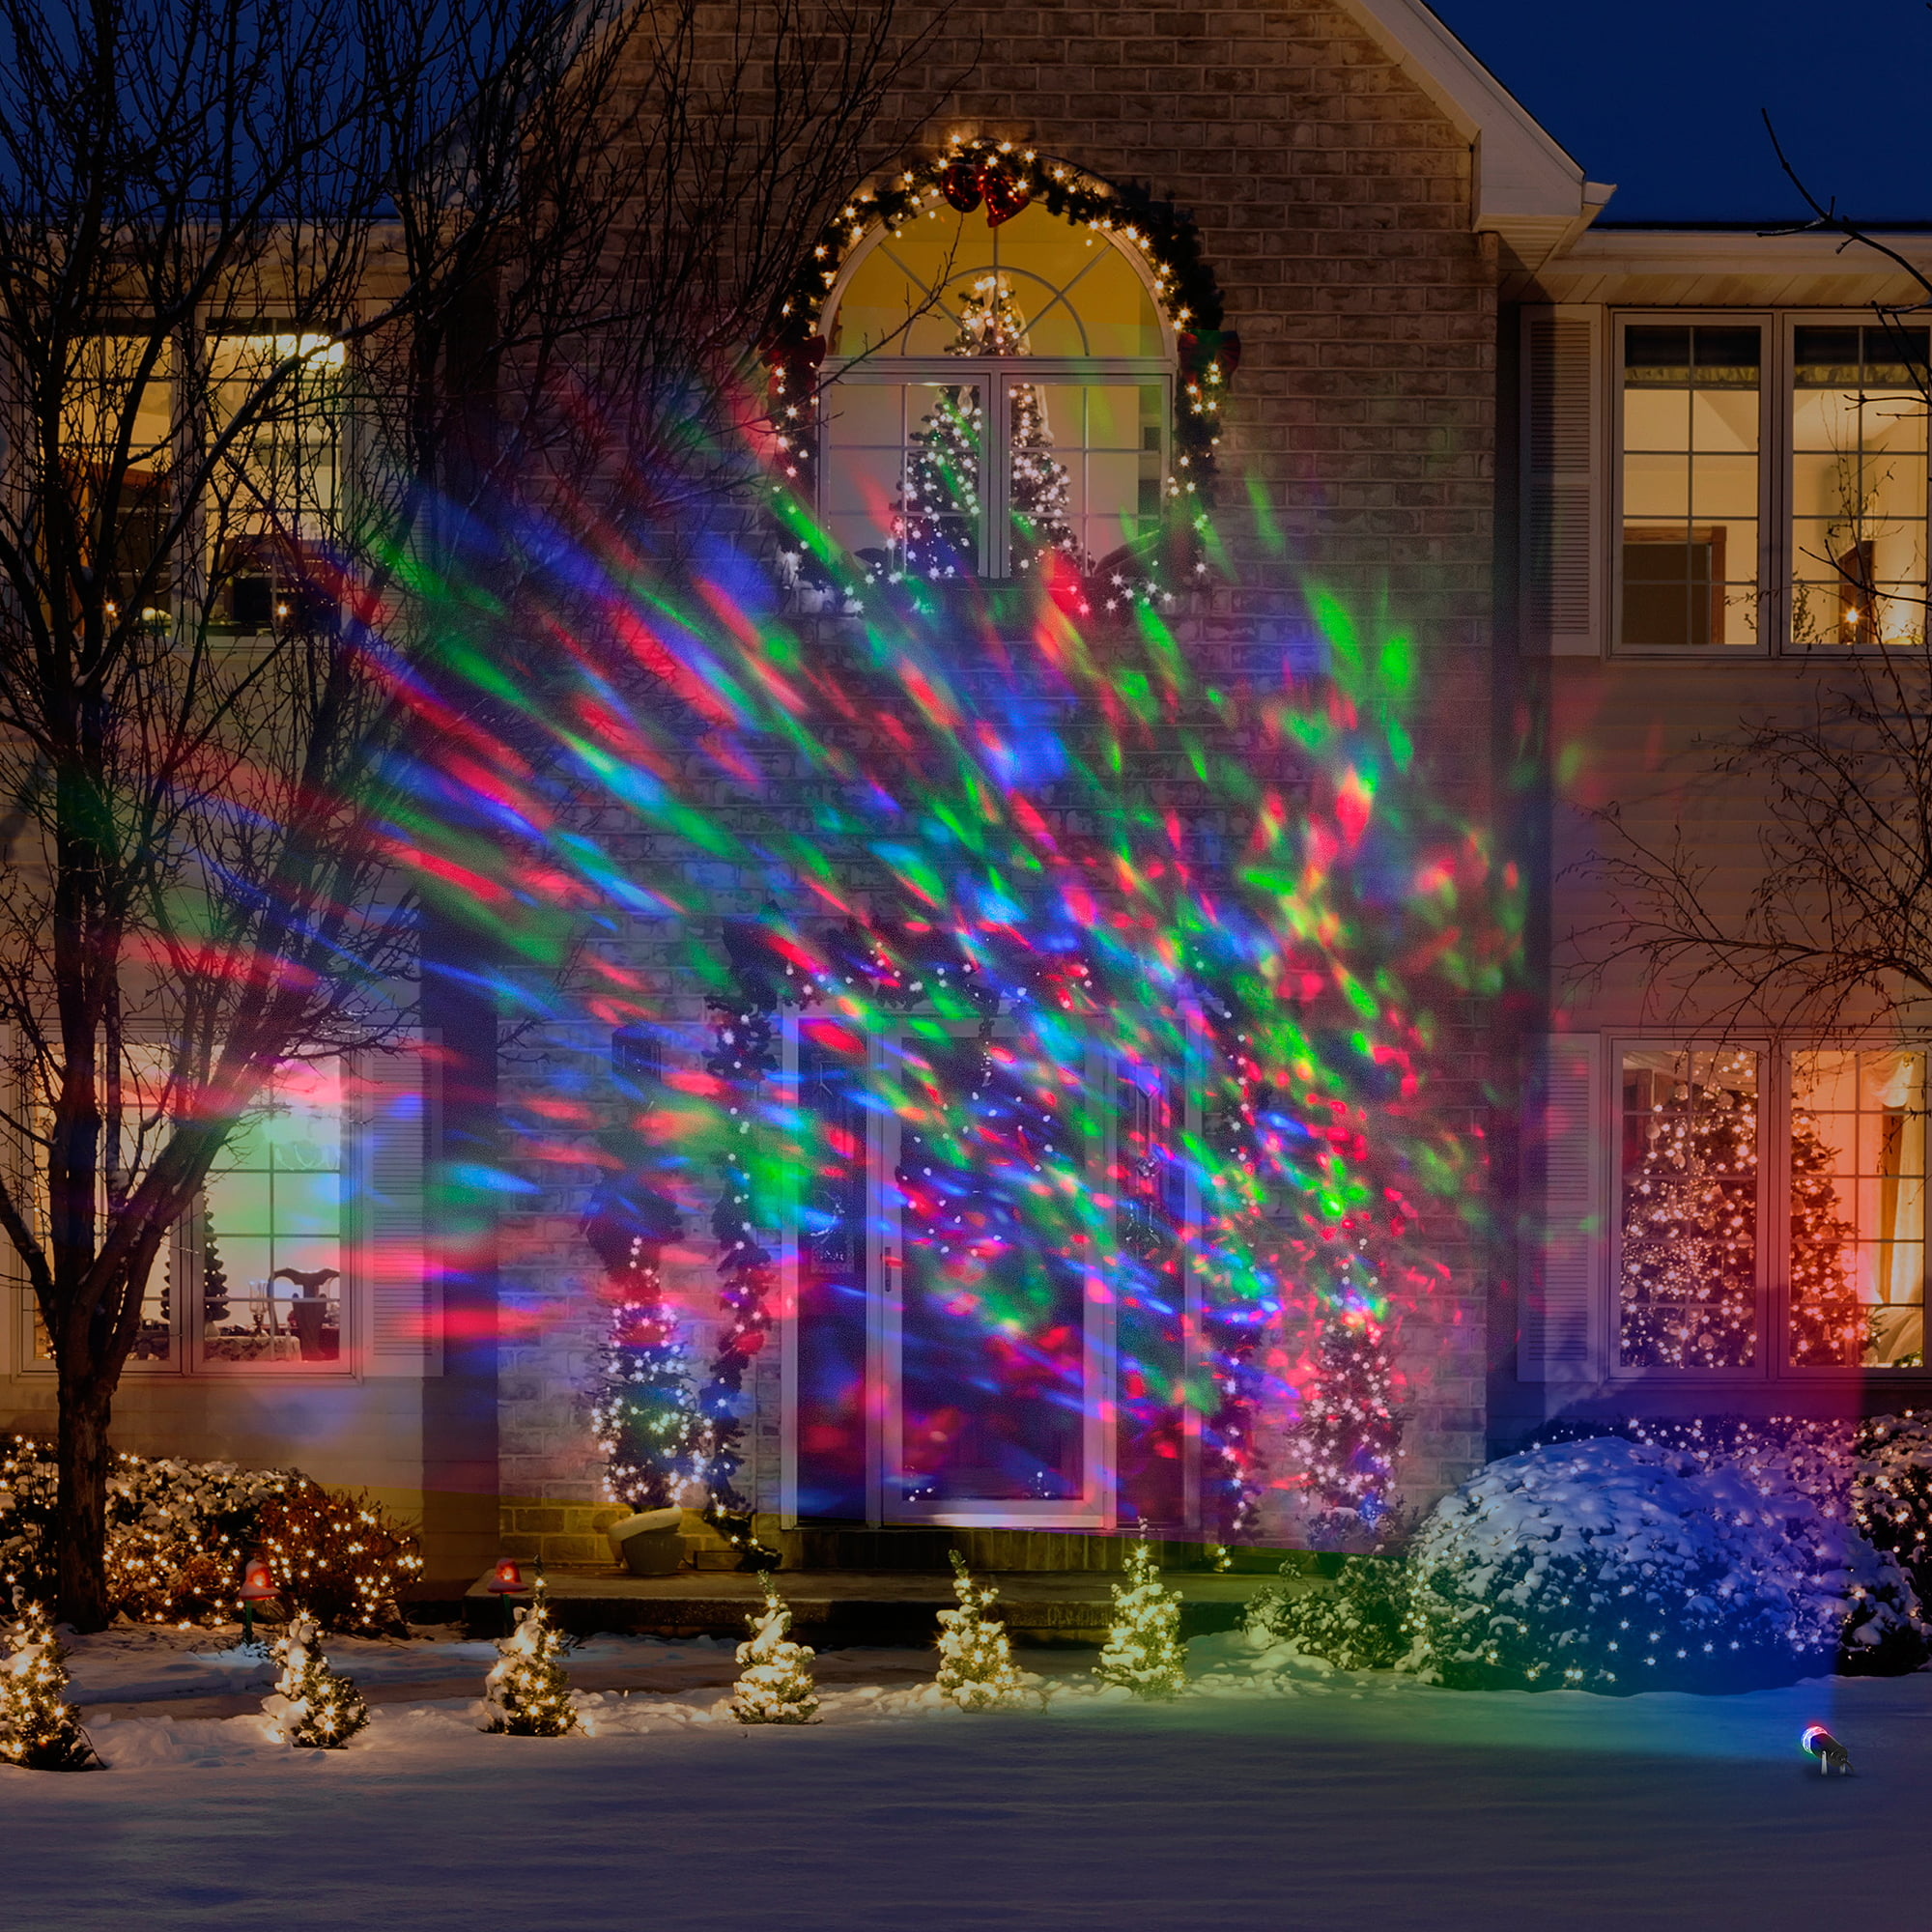 Lightshow Kaleidoscope Multi-Colored Christmas Lights - Walmart.com